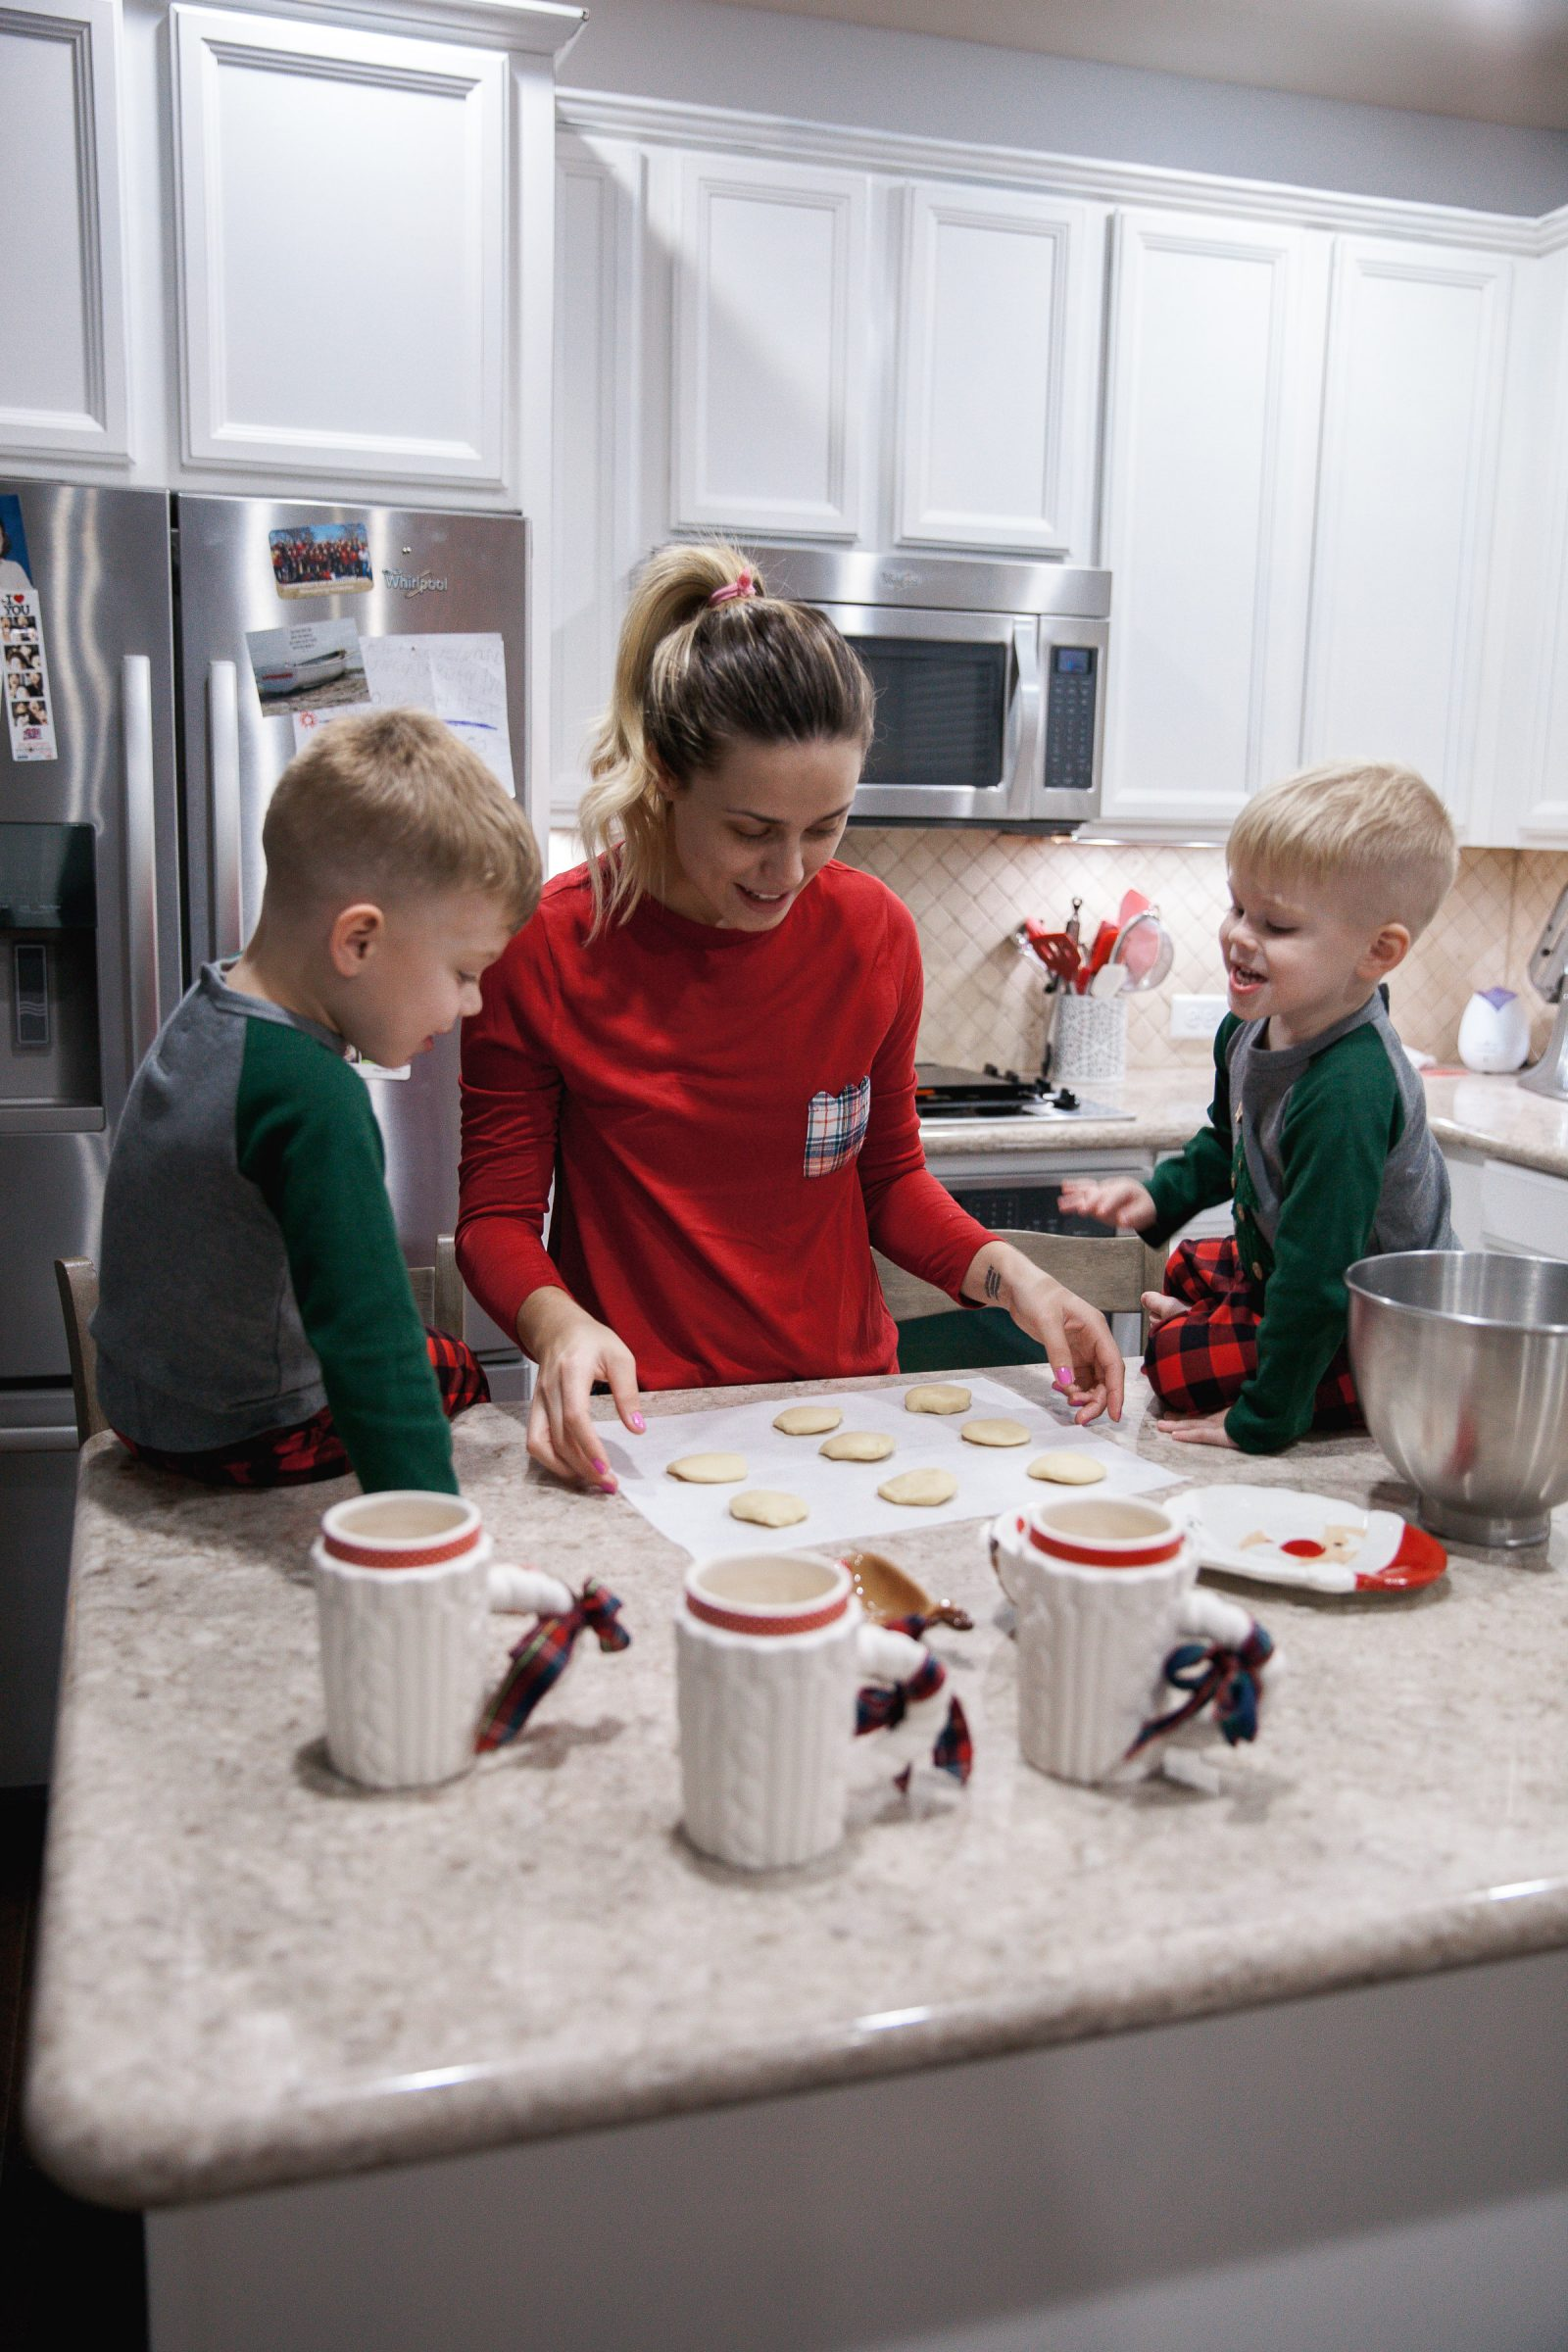 Christmas Decor | Christmas Traditions | Family Holiday Traditions | Uptown with Elly Brown - Christmas Family Traditions with MudPie by Houston style blogger Uptown with Elly Brown